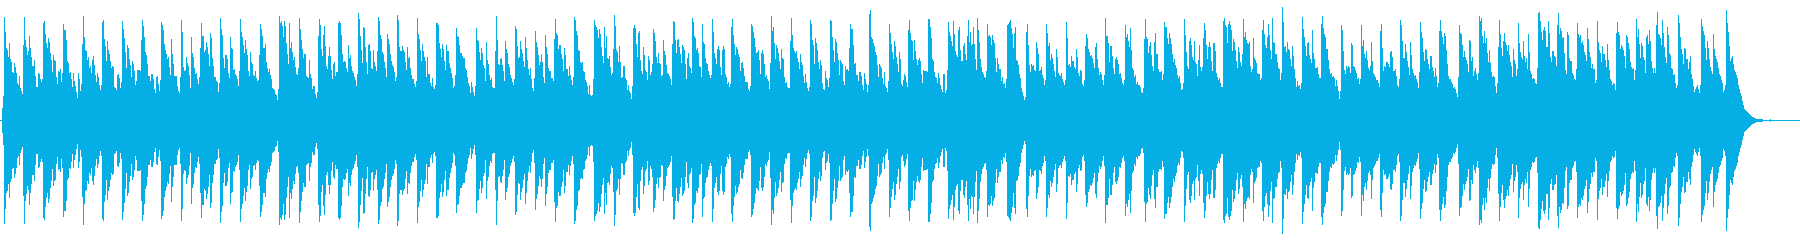 Where's your thumb?'s reproduced waveform